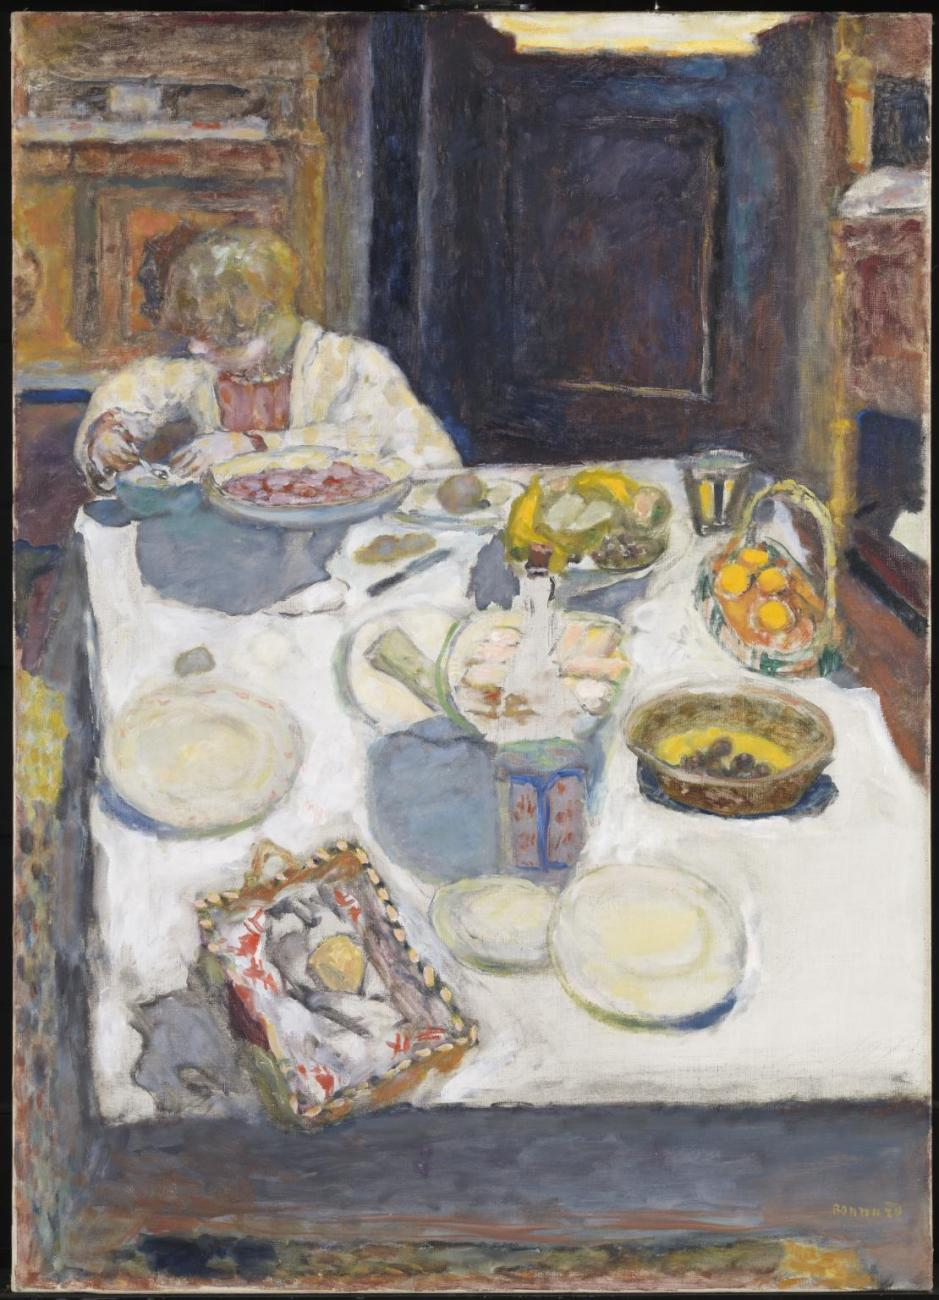 The Table 1925 by Pierre Bonnard 1867-1947